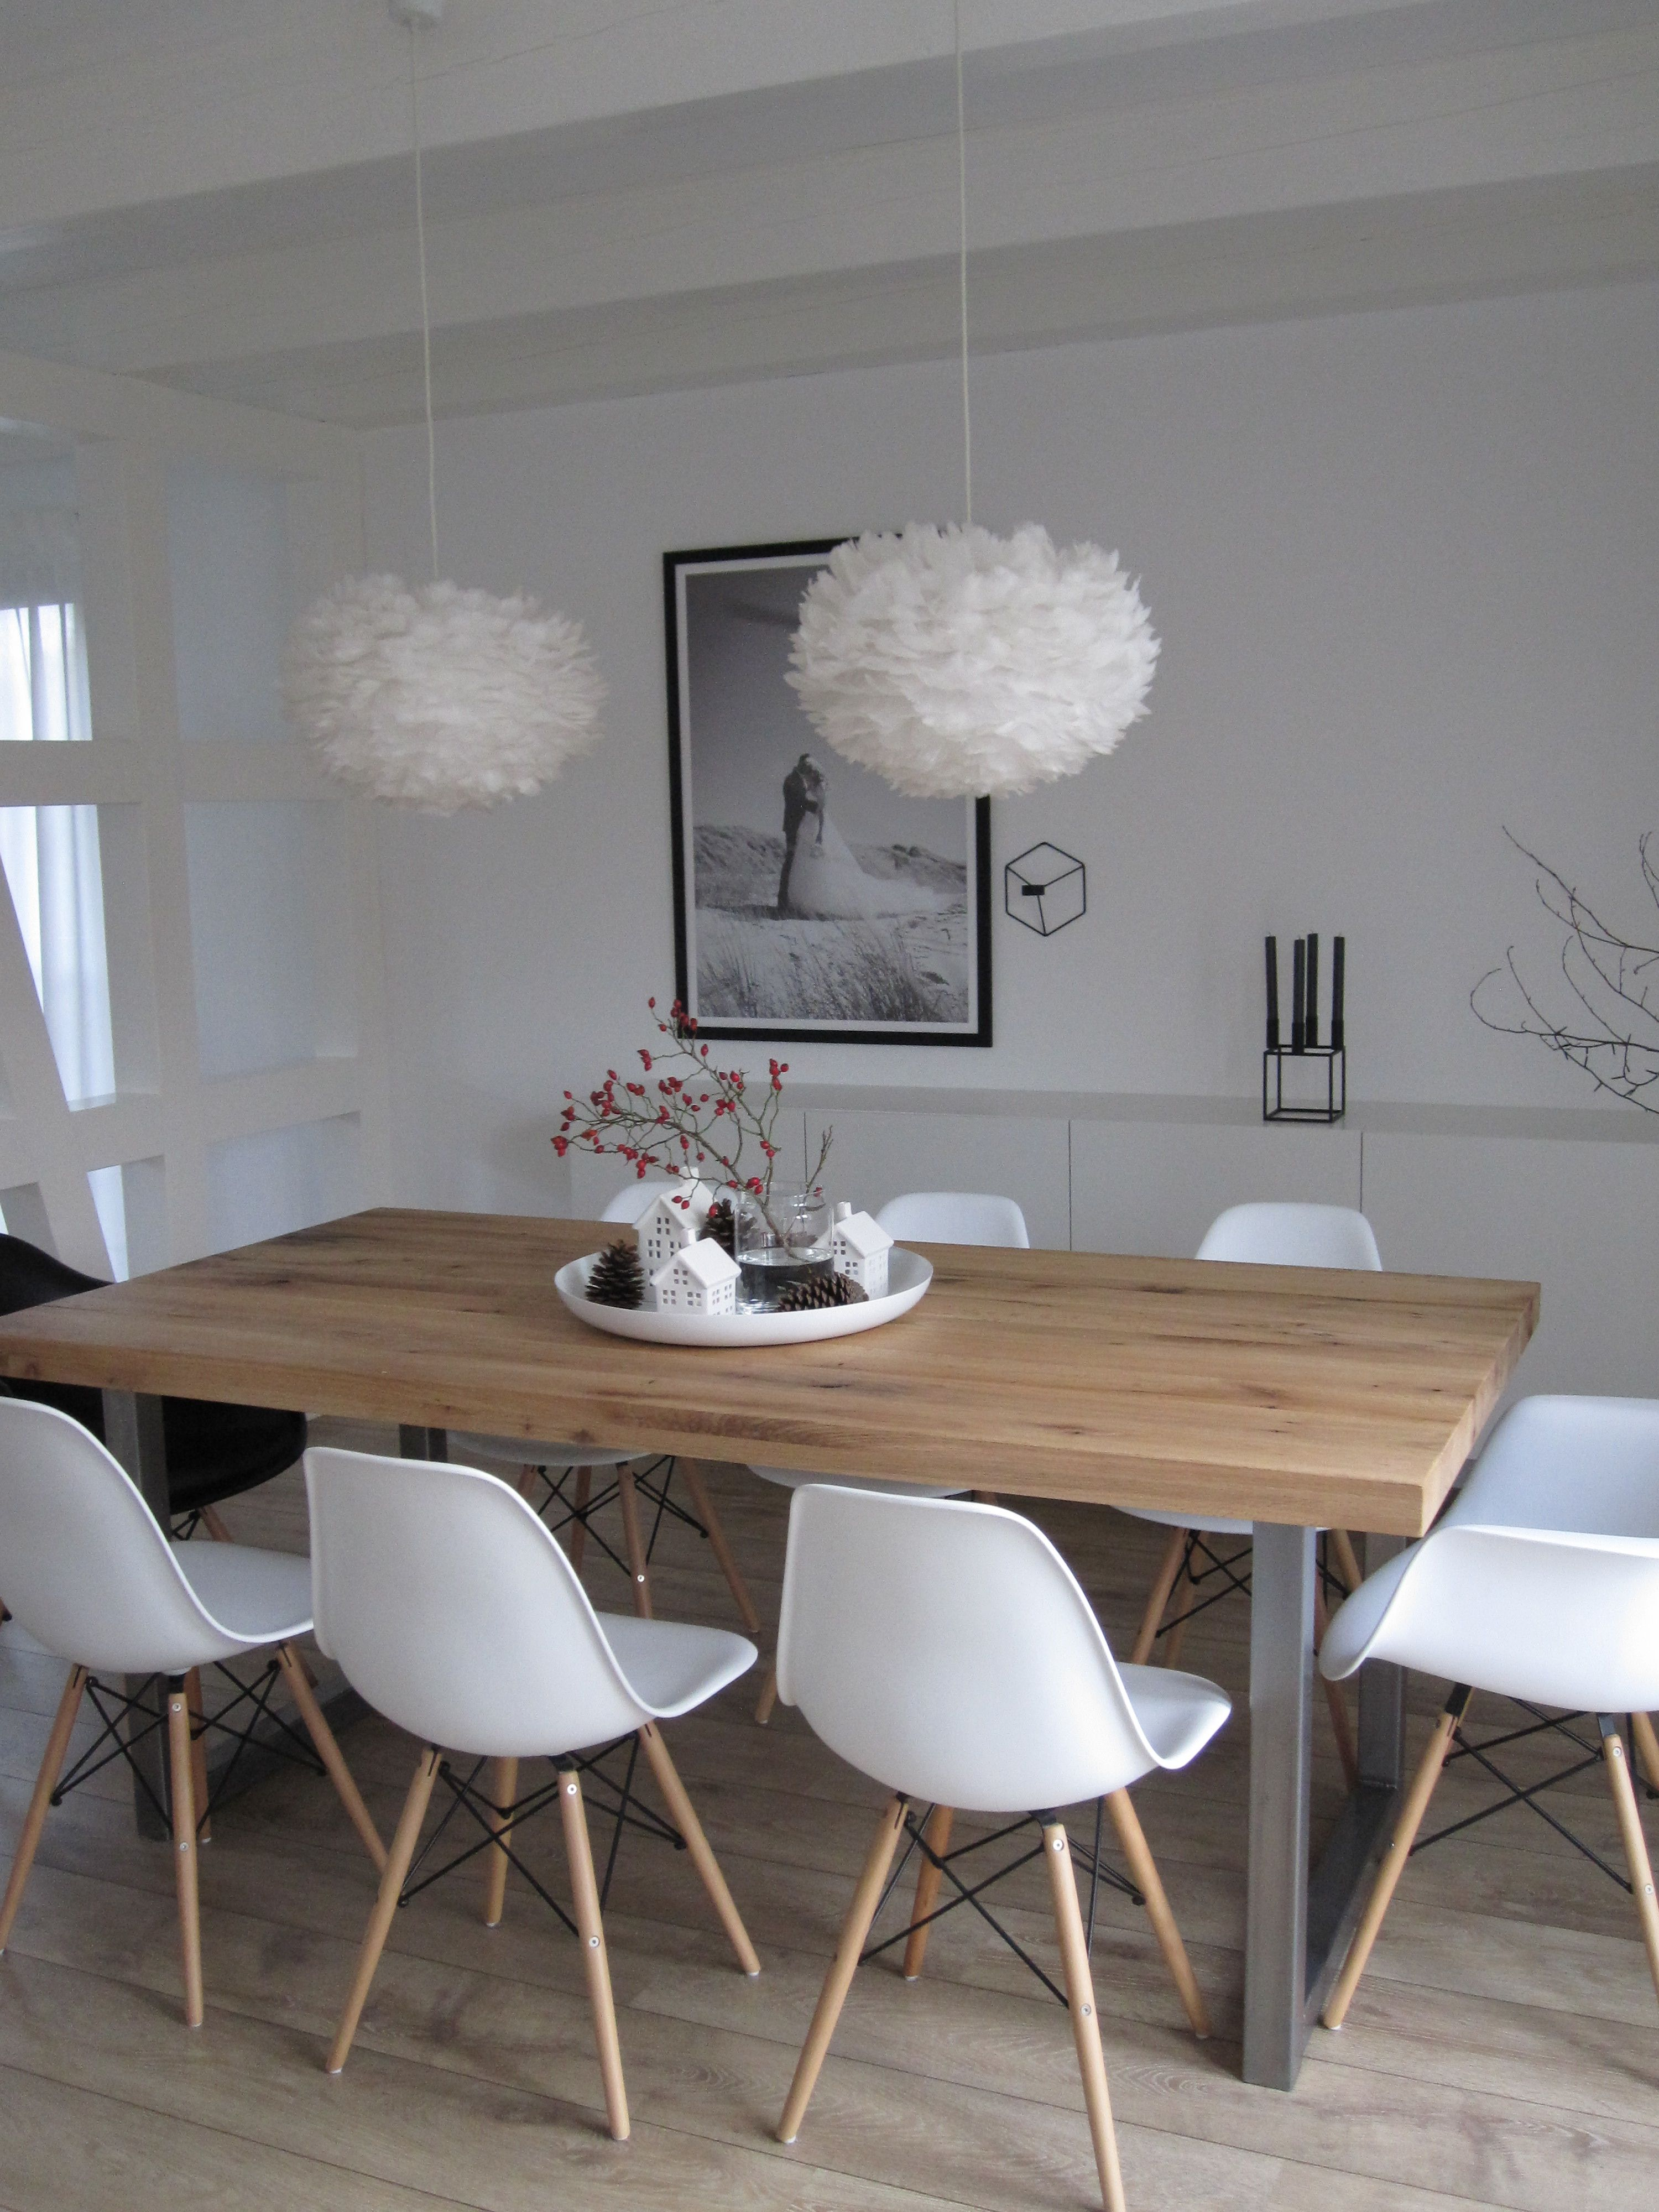 Esszimmermöbel design pin by leyma on cool ideas  pinterest  dining room and interiors